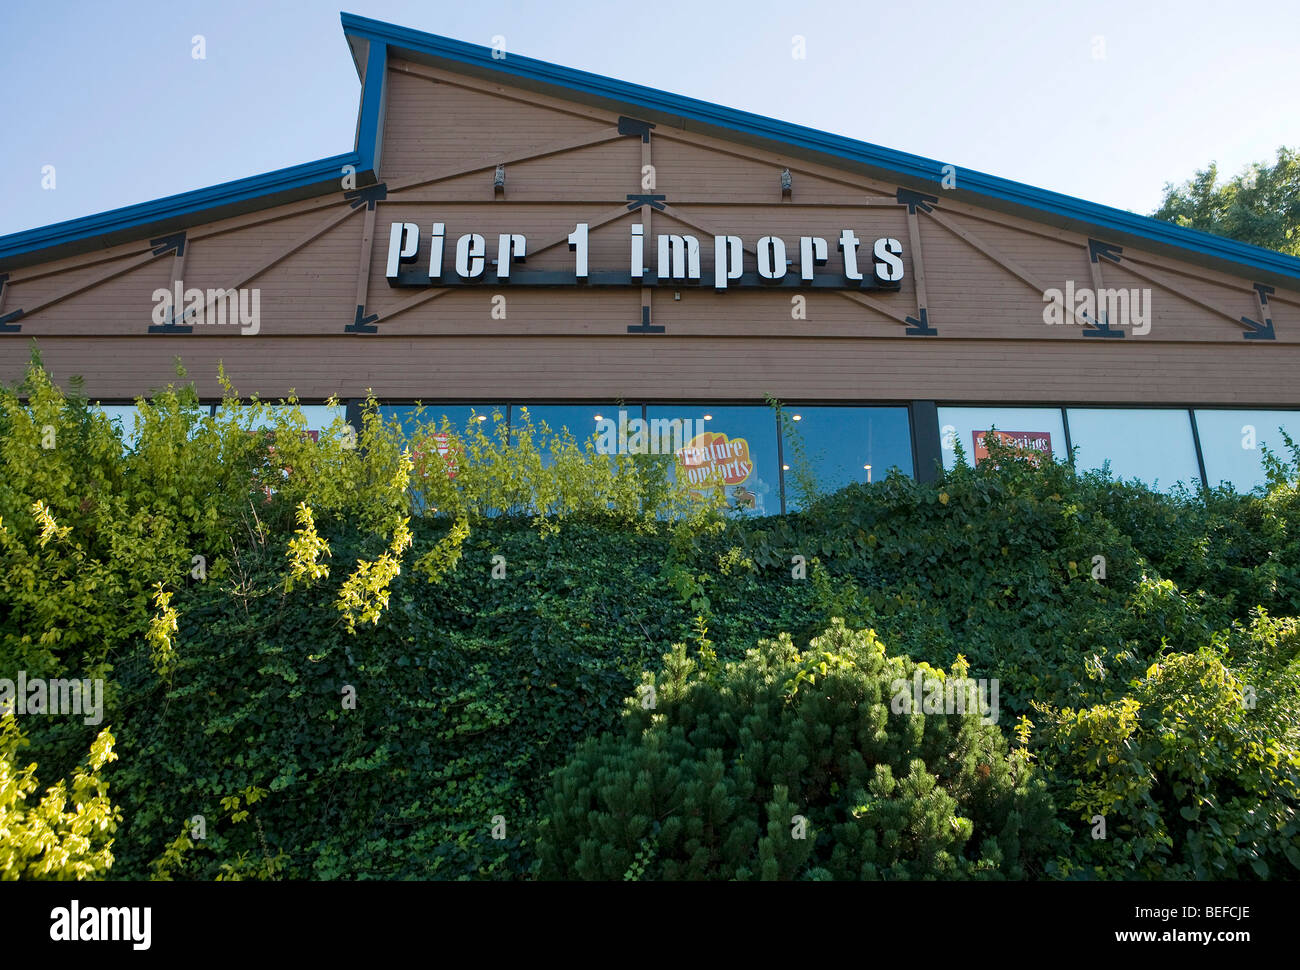 A Pier 1 Imports retail location in Maryland.  - Stock Image